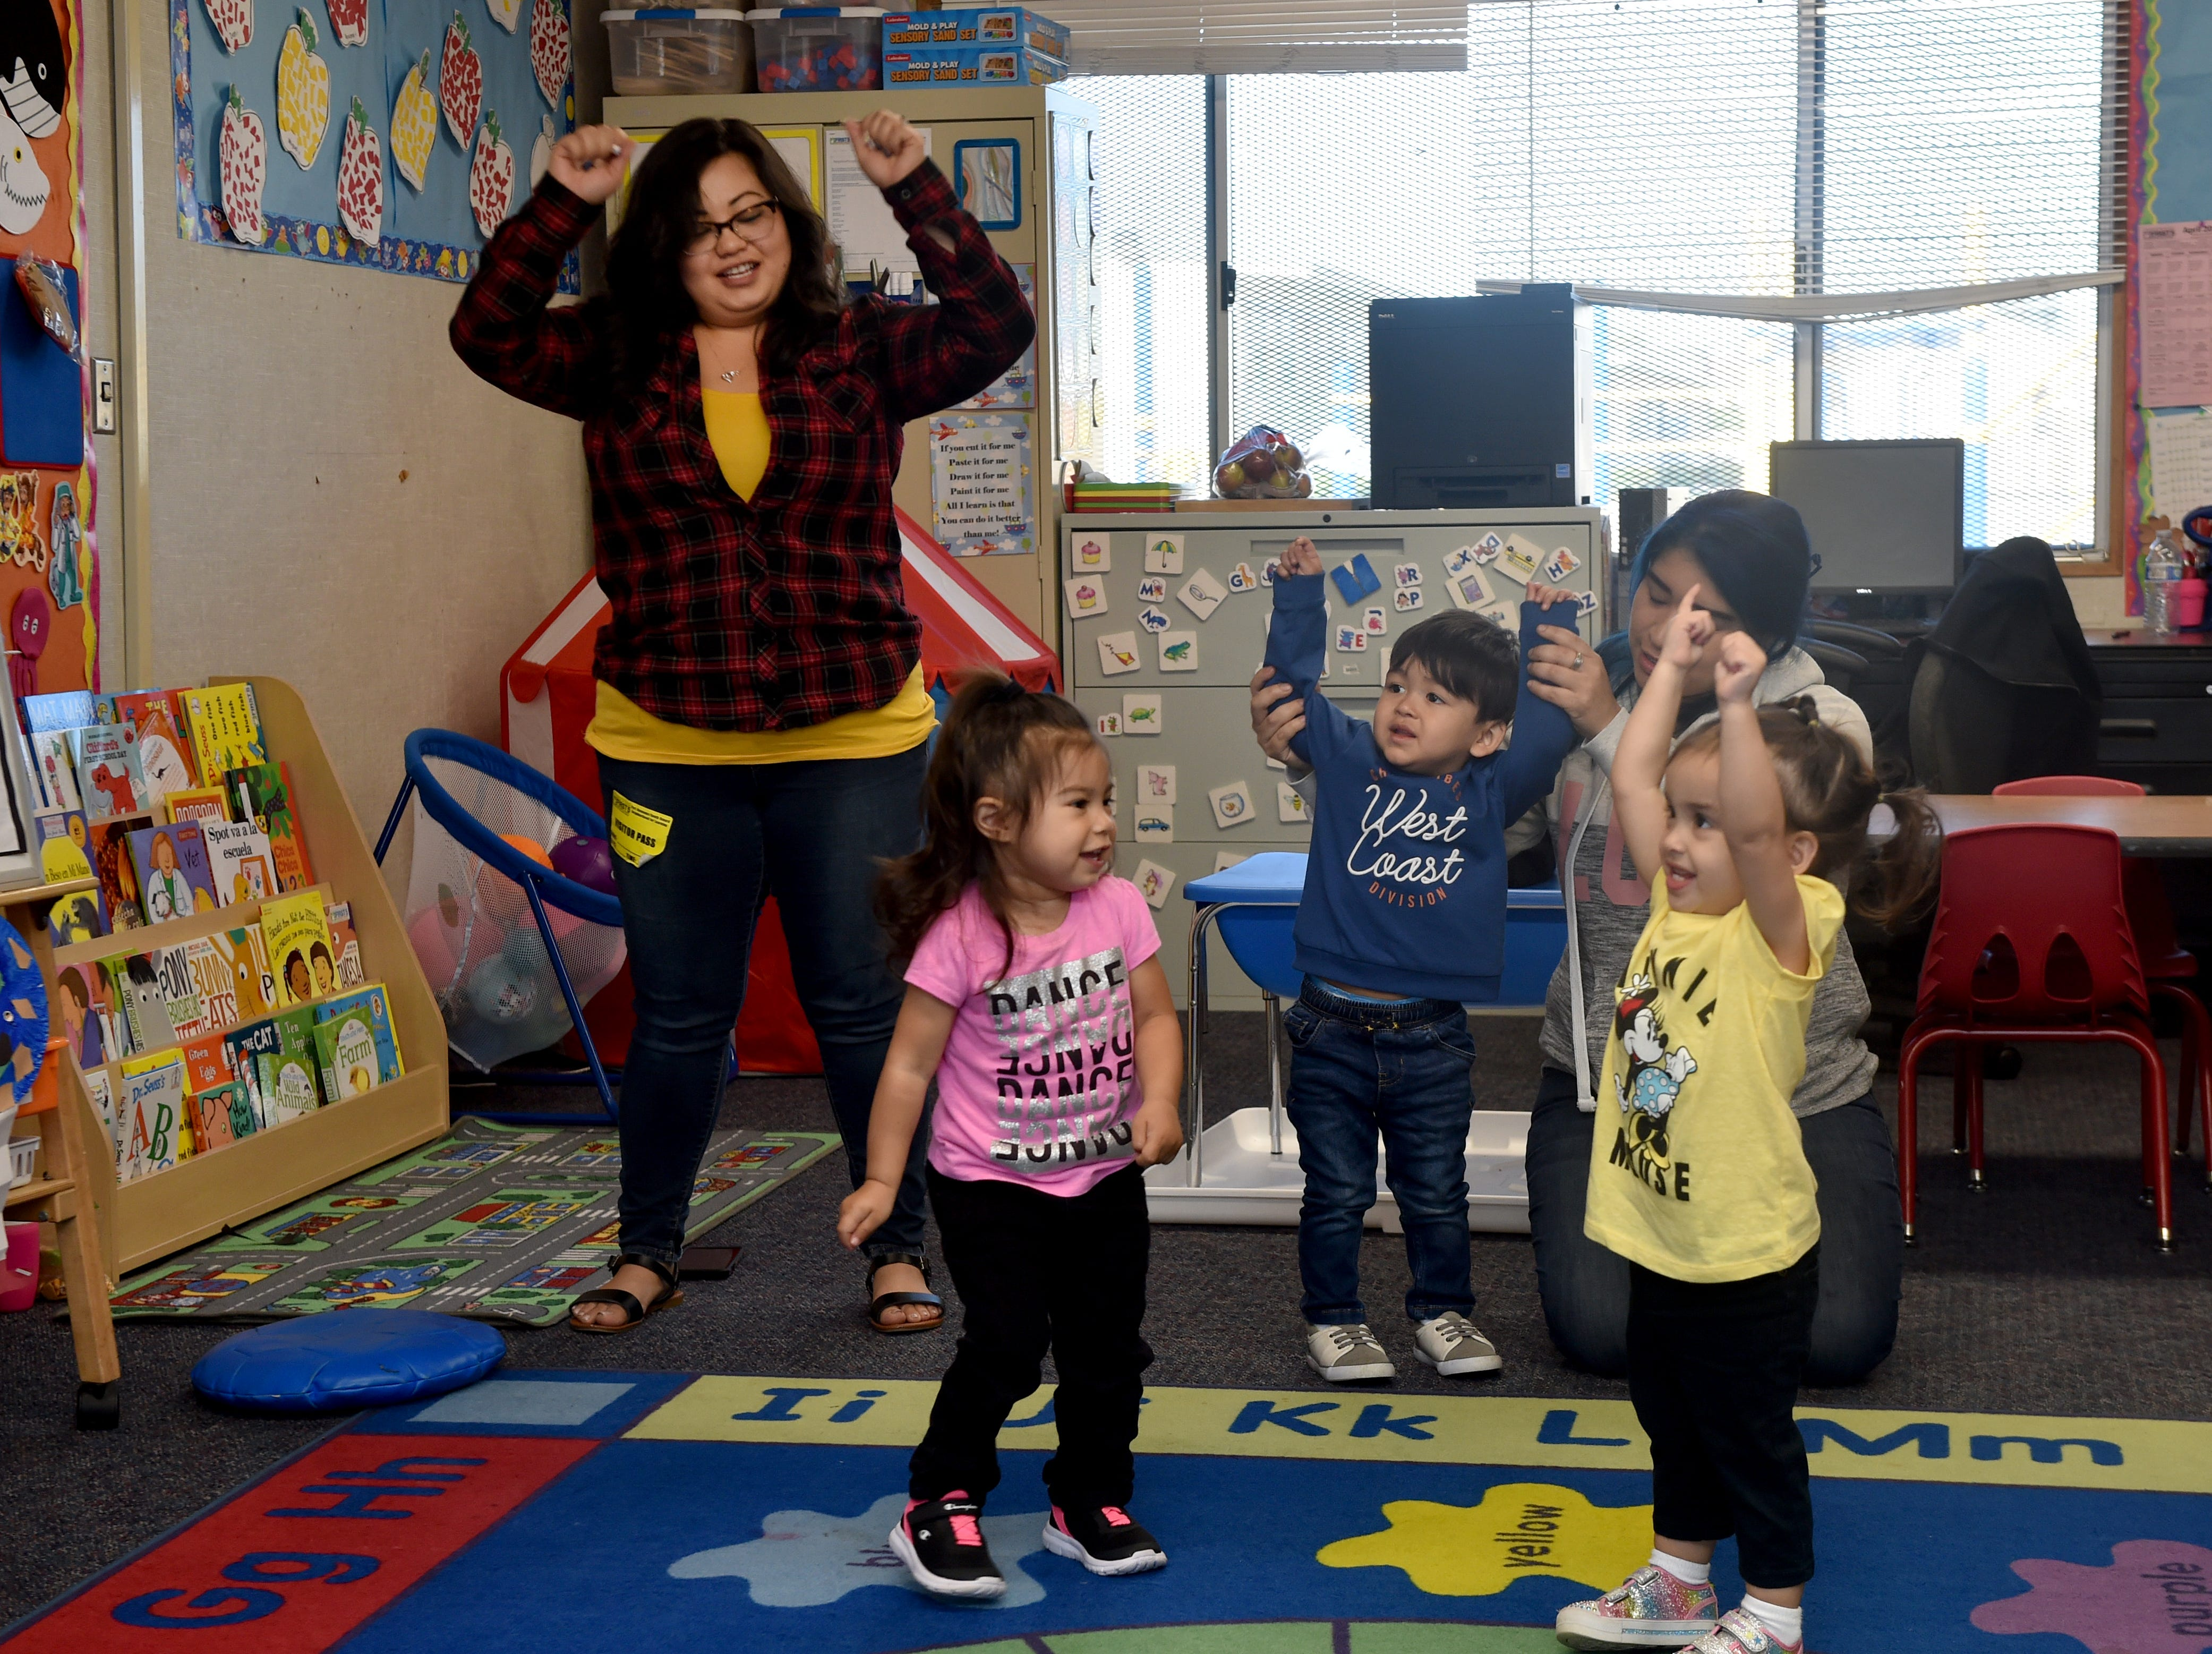 (From right) Roxanne Barbittin, Aaron Juarez and Anya Garcia dance during a First 5 Neighborhoods for Learning class at Hathaway Elementary School in Oxnard on April 23.